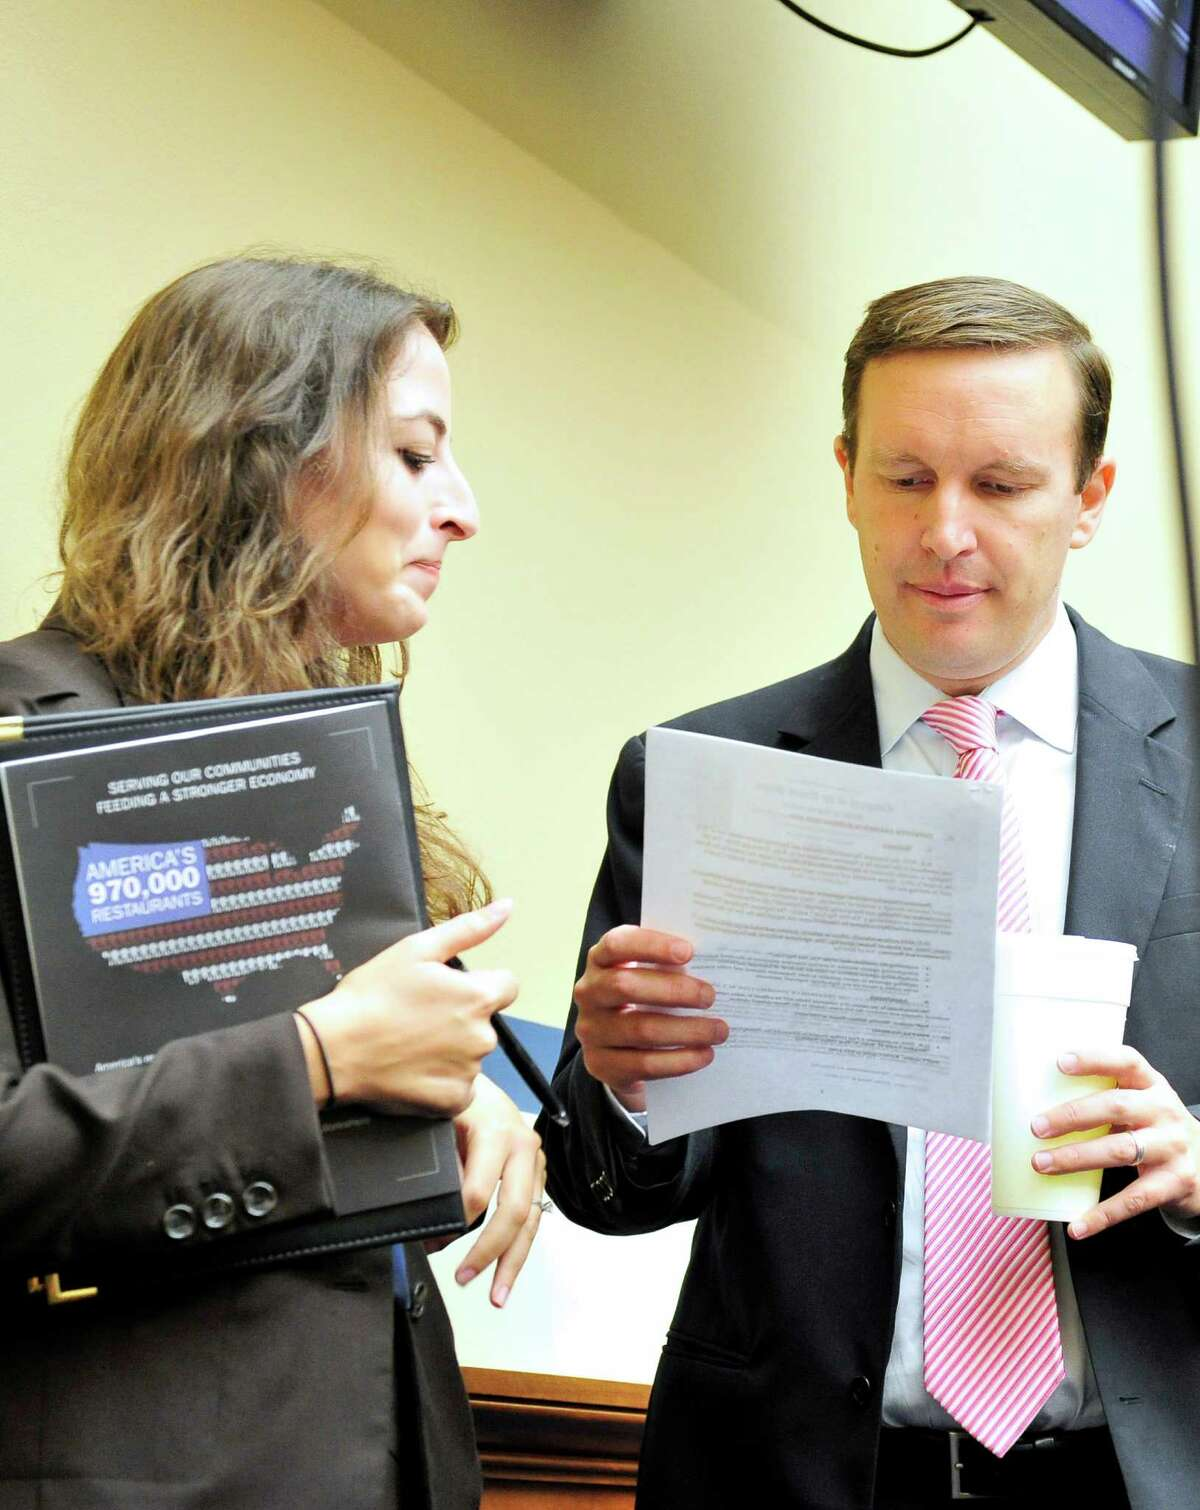 U.S. Rep. Chris Murphy (D-Conn.) goes over his notes with Linda Forman Naval, Legislative Assistant, as he arrives for a hearing of the U.S. House Committee on Oversight and Government Reform on Operation Fast and Furious in Washington, D.C. on Thursday, September 20, 2012.